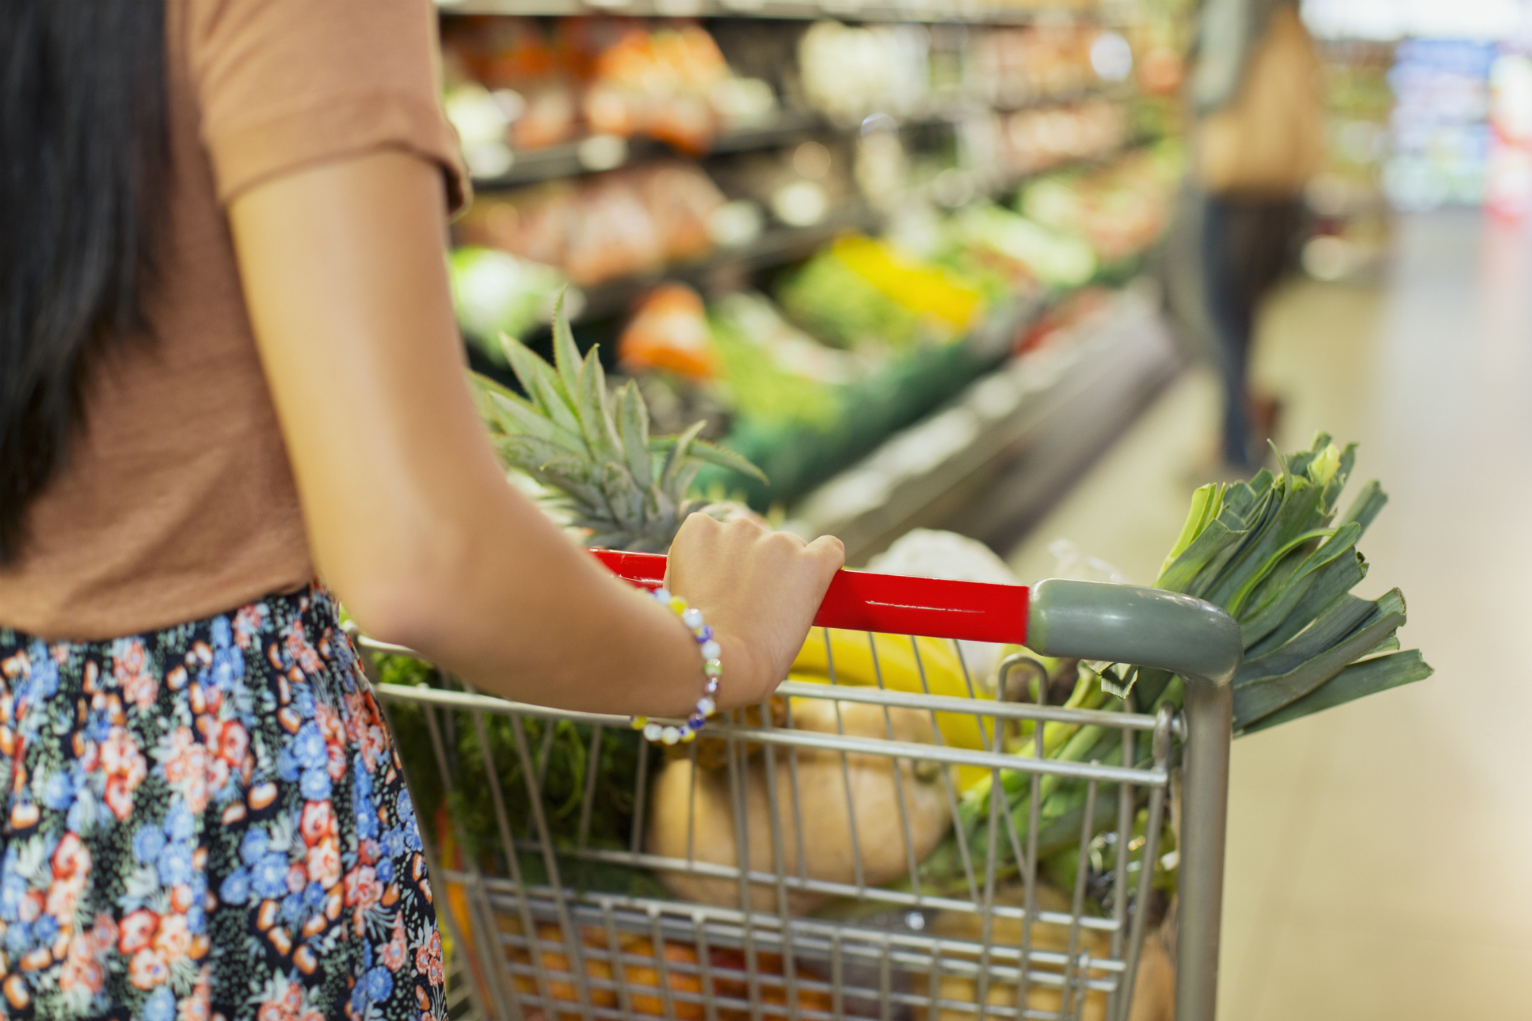 20 Tips For Saving Money At The Grocery Store